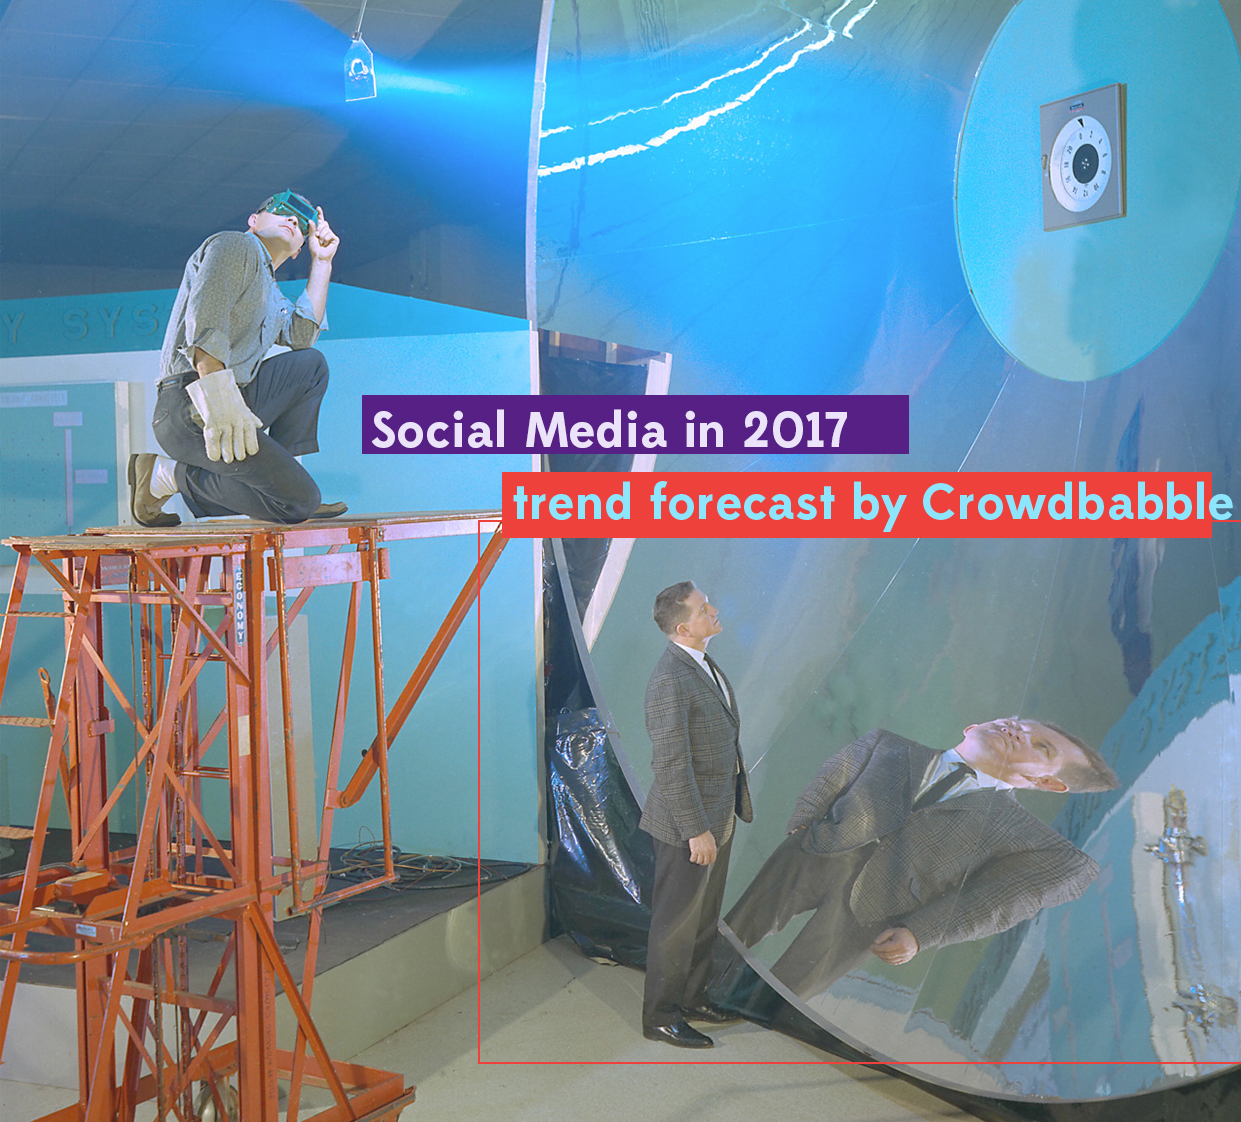 social media marketing guide for 2017 trend forecast by crowdbabble, text over image from NASA of a large metal cone being tested with light reflected off it